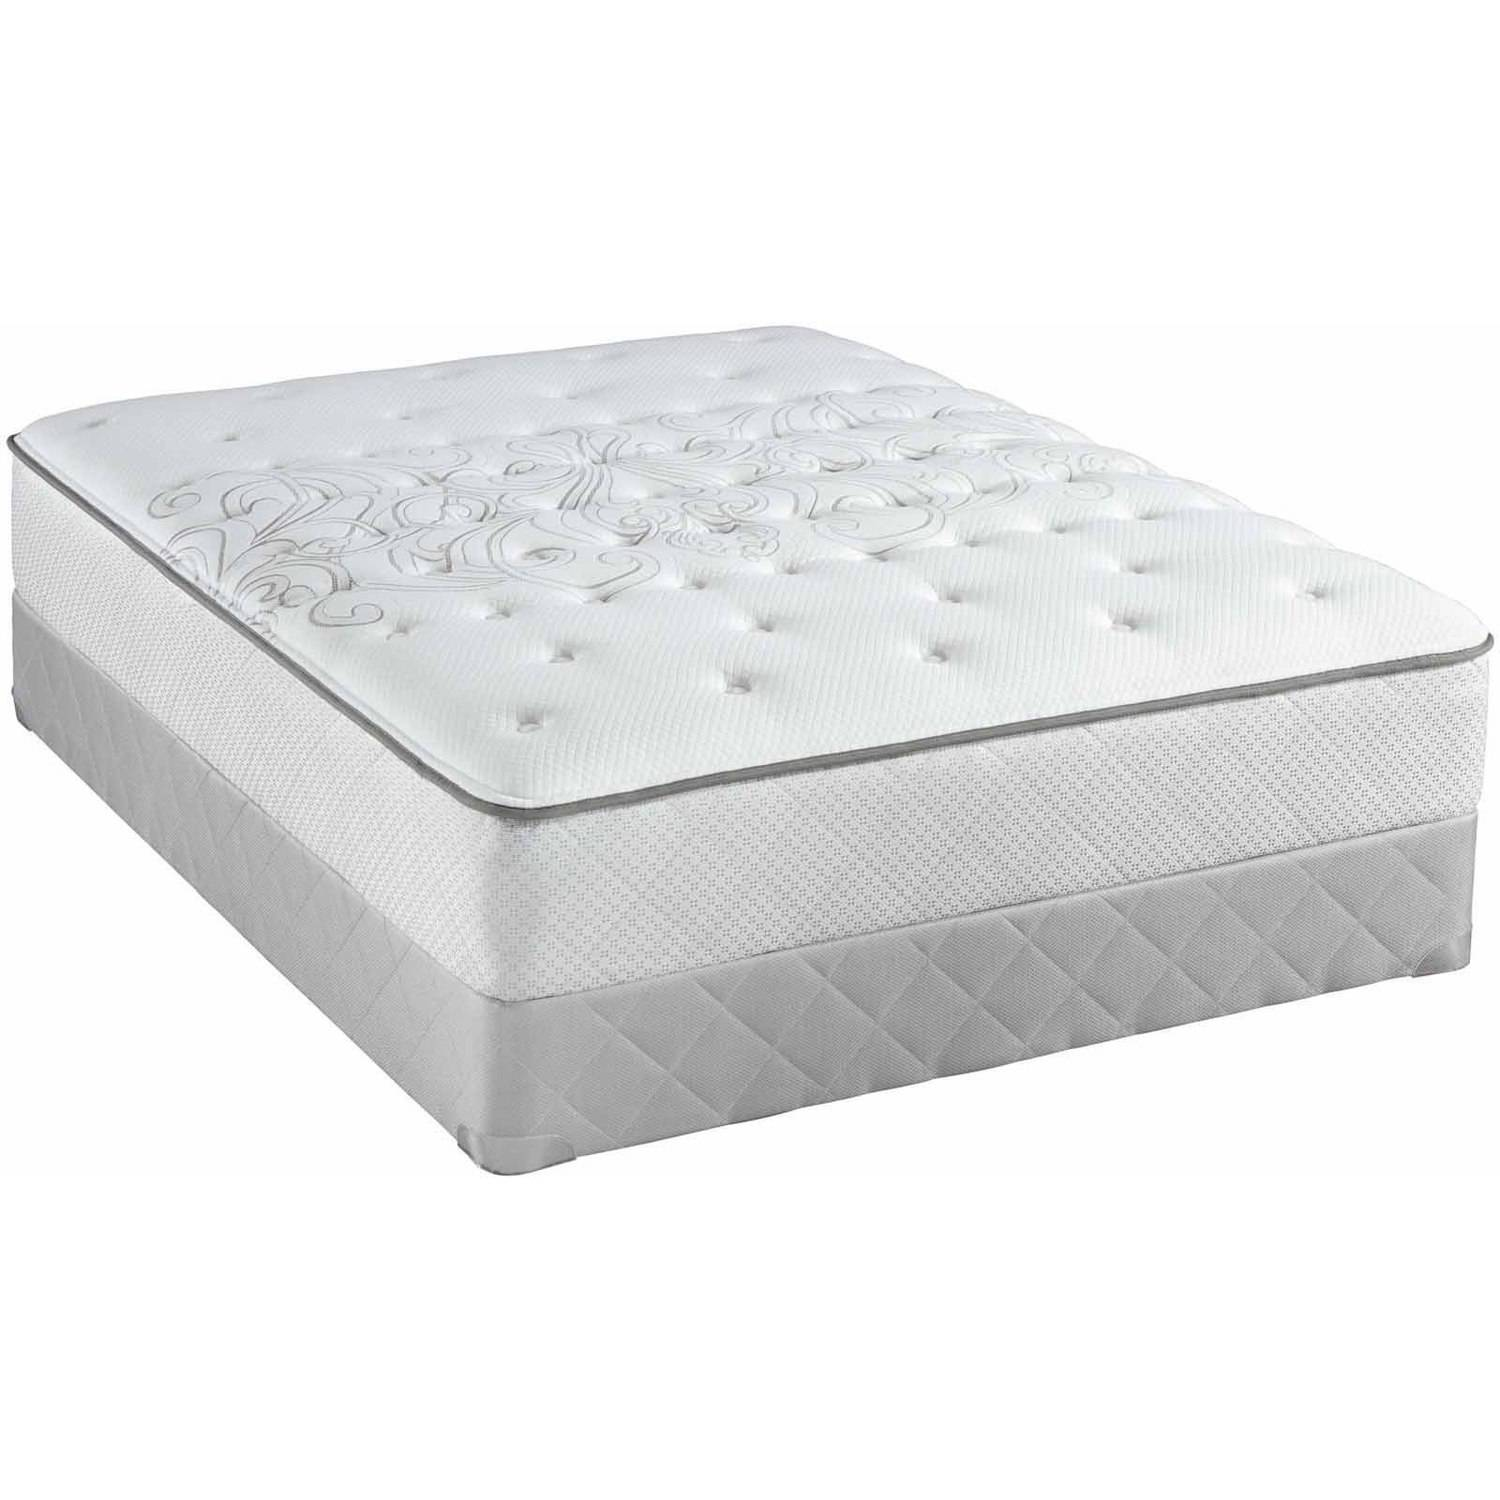 Pillow Top King Mattress Sealy Posturepedic Balderton Euro Pillowtop 14